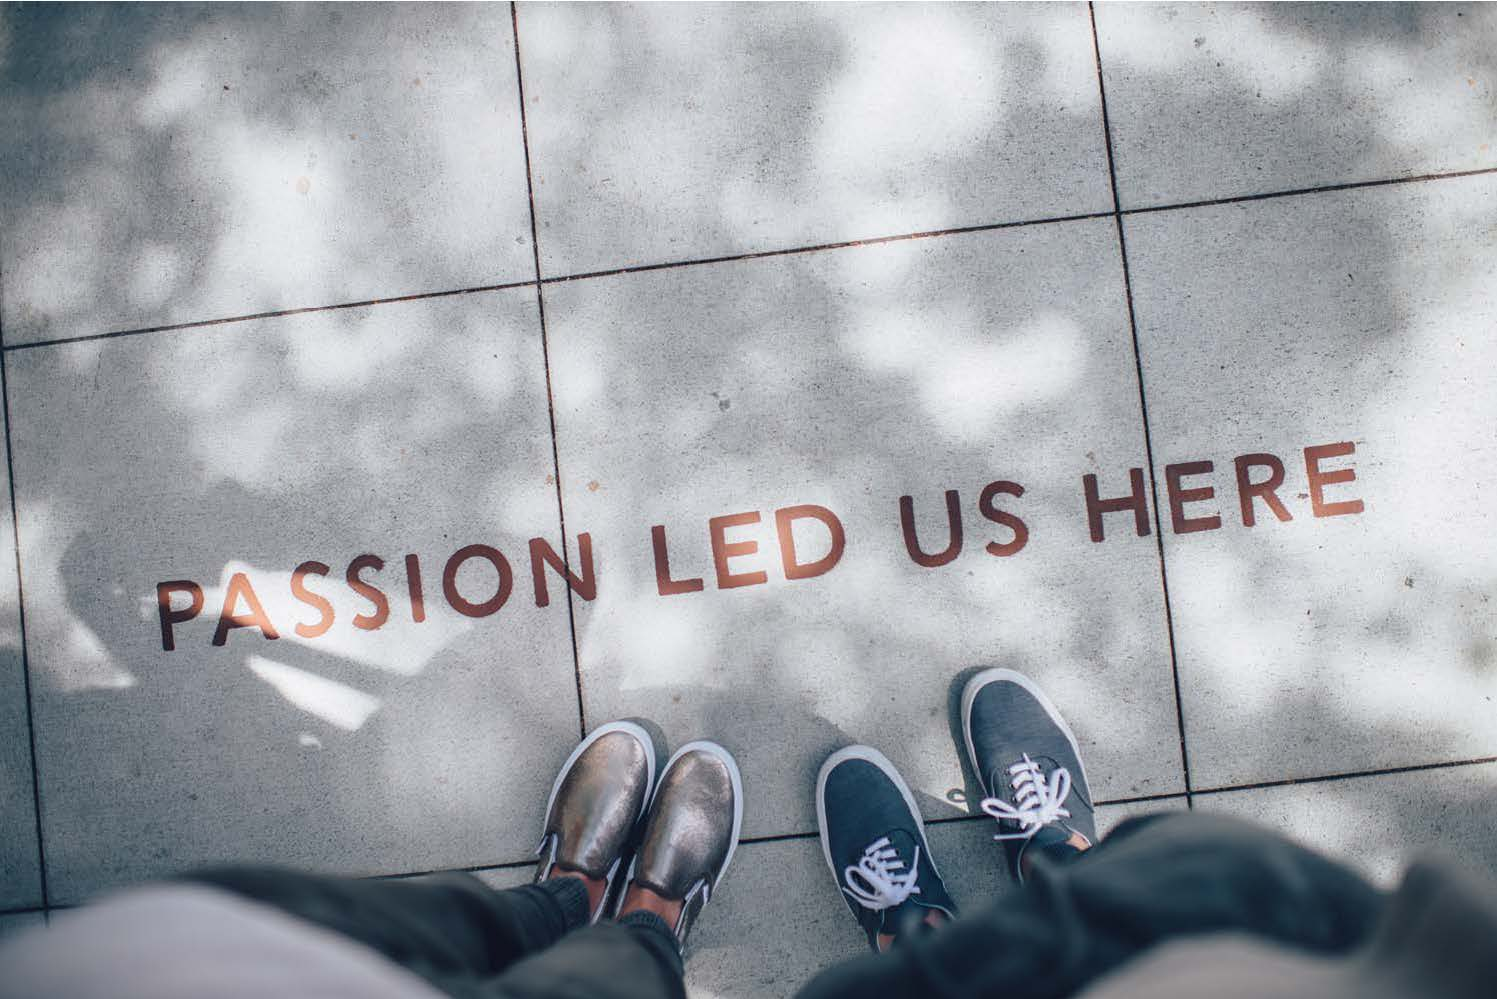 Image looking down at the concrete that says Passion Led Us Here